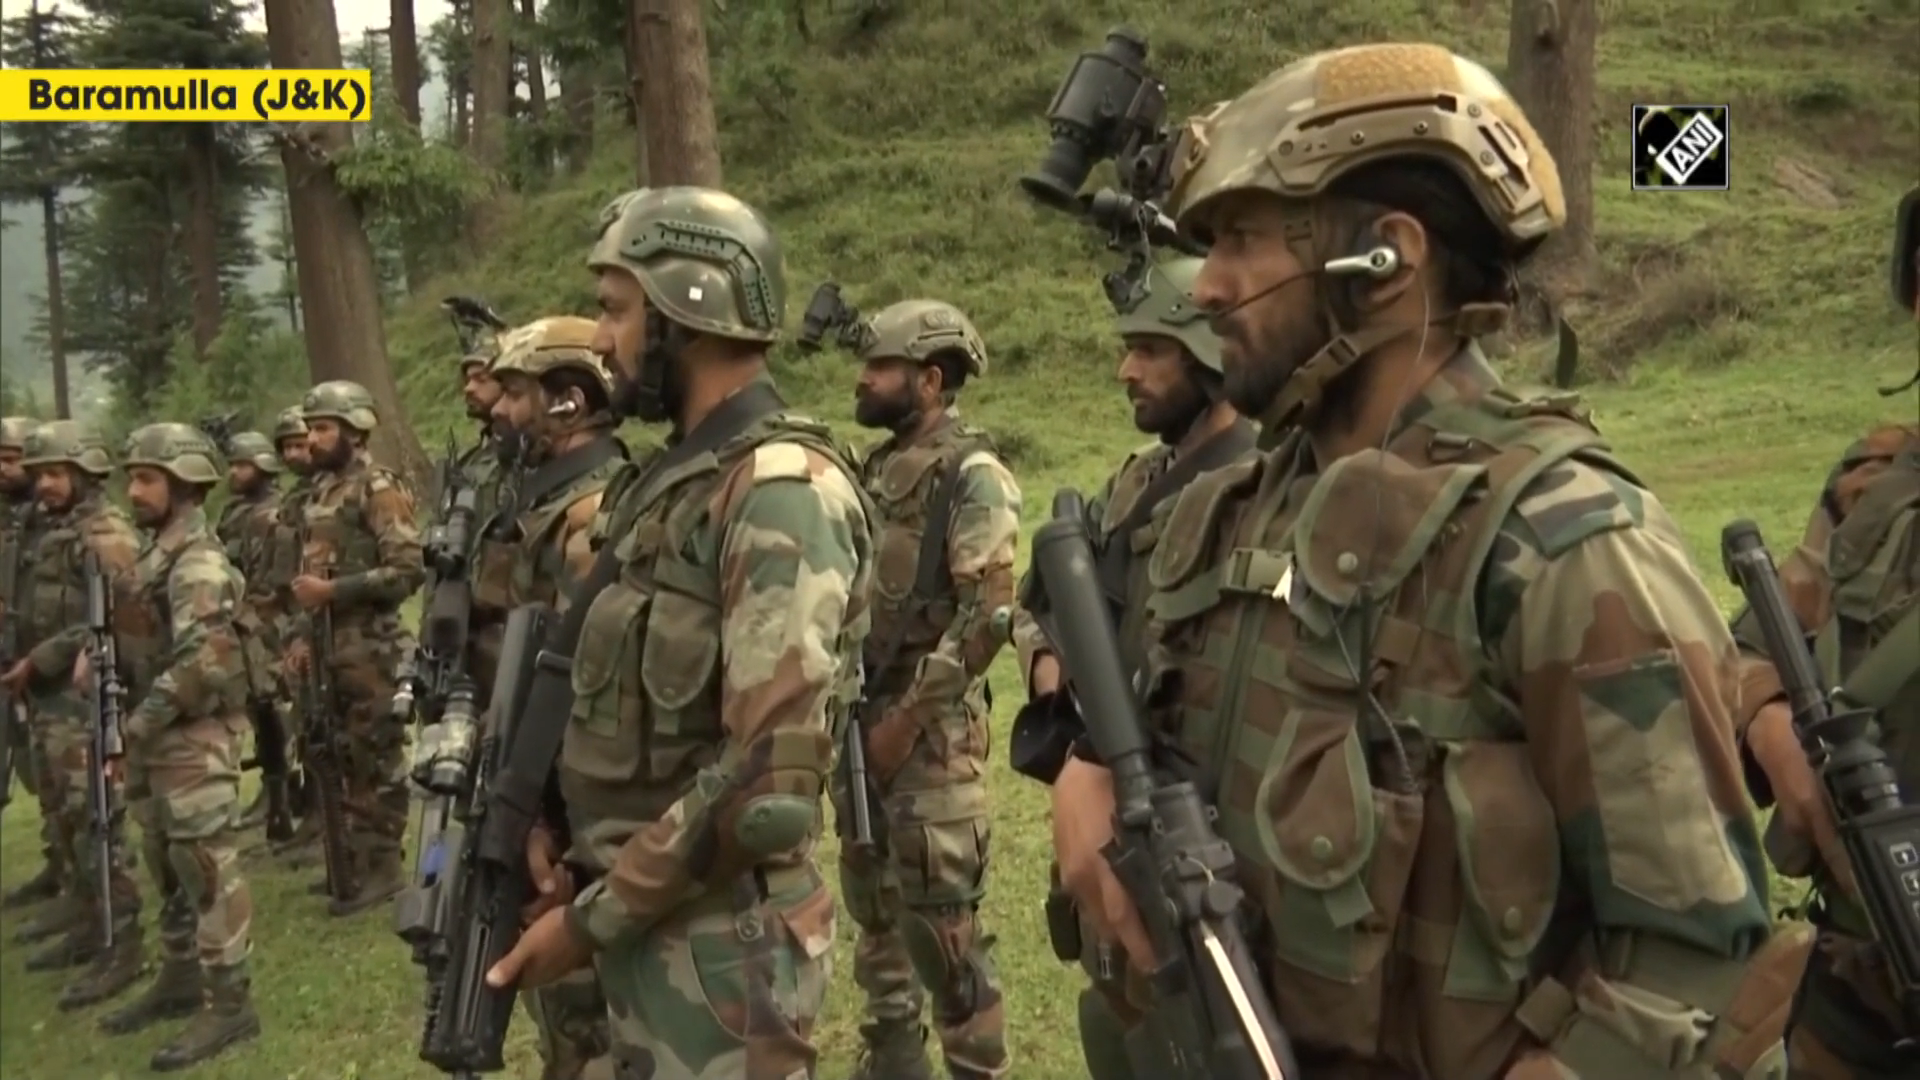 Indian Army soldiers in J&K equipped with latest weaponries to counter terrorists operations 0...png